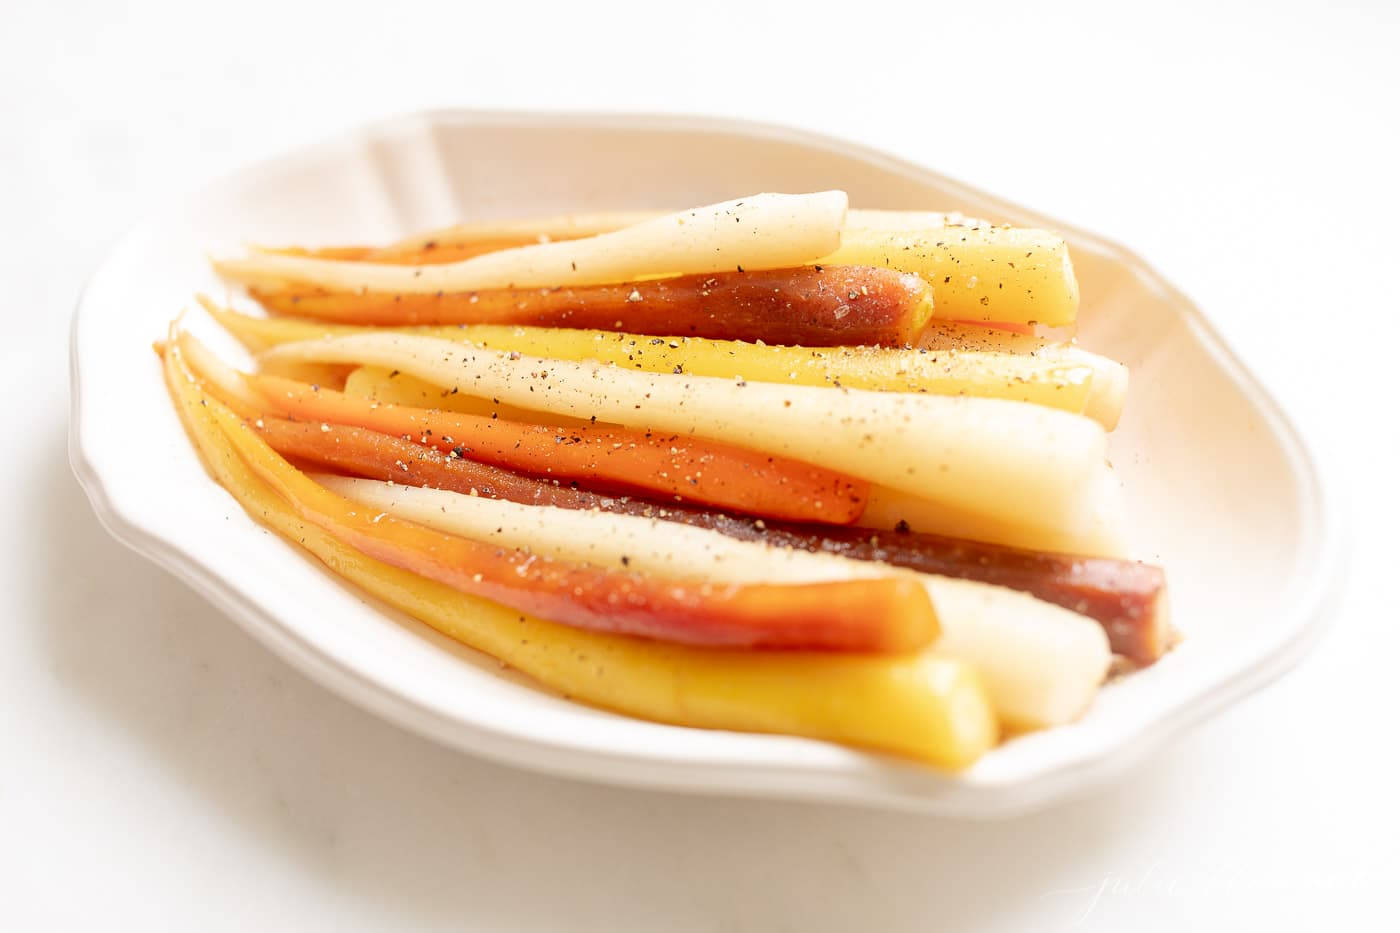 cooked carrots in ivory dish